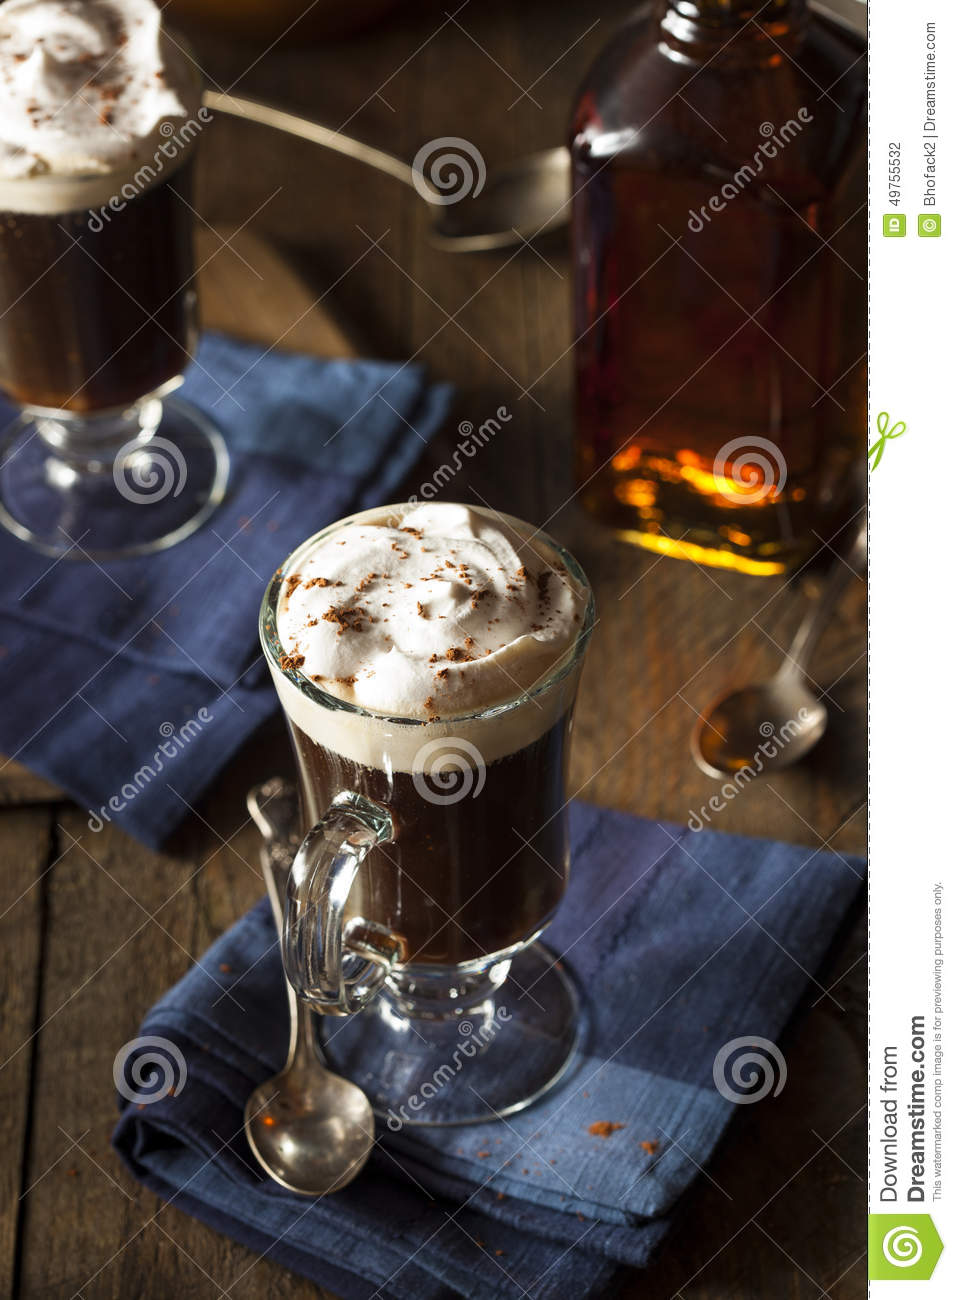 Irish coffee casalingo con whiskey